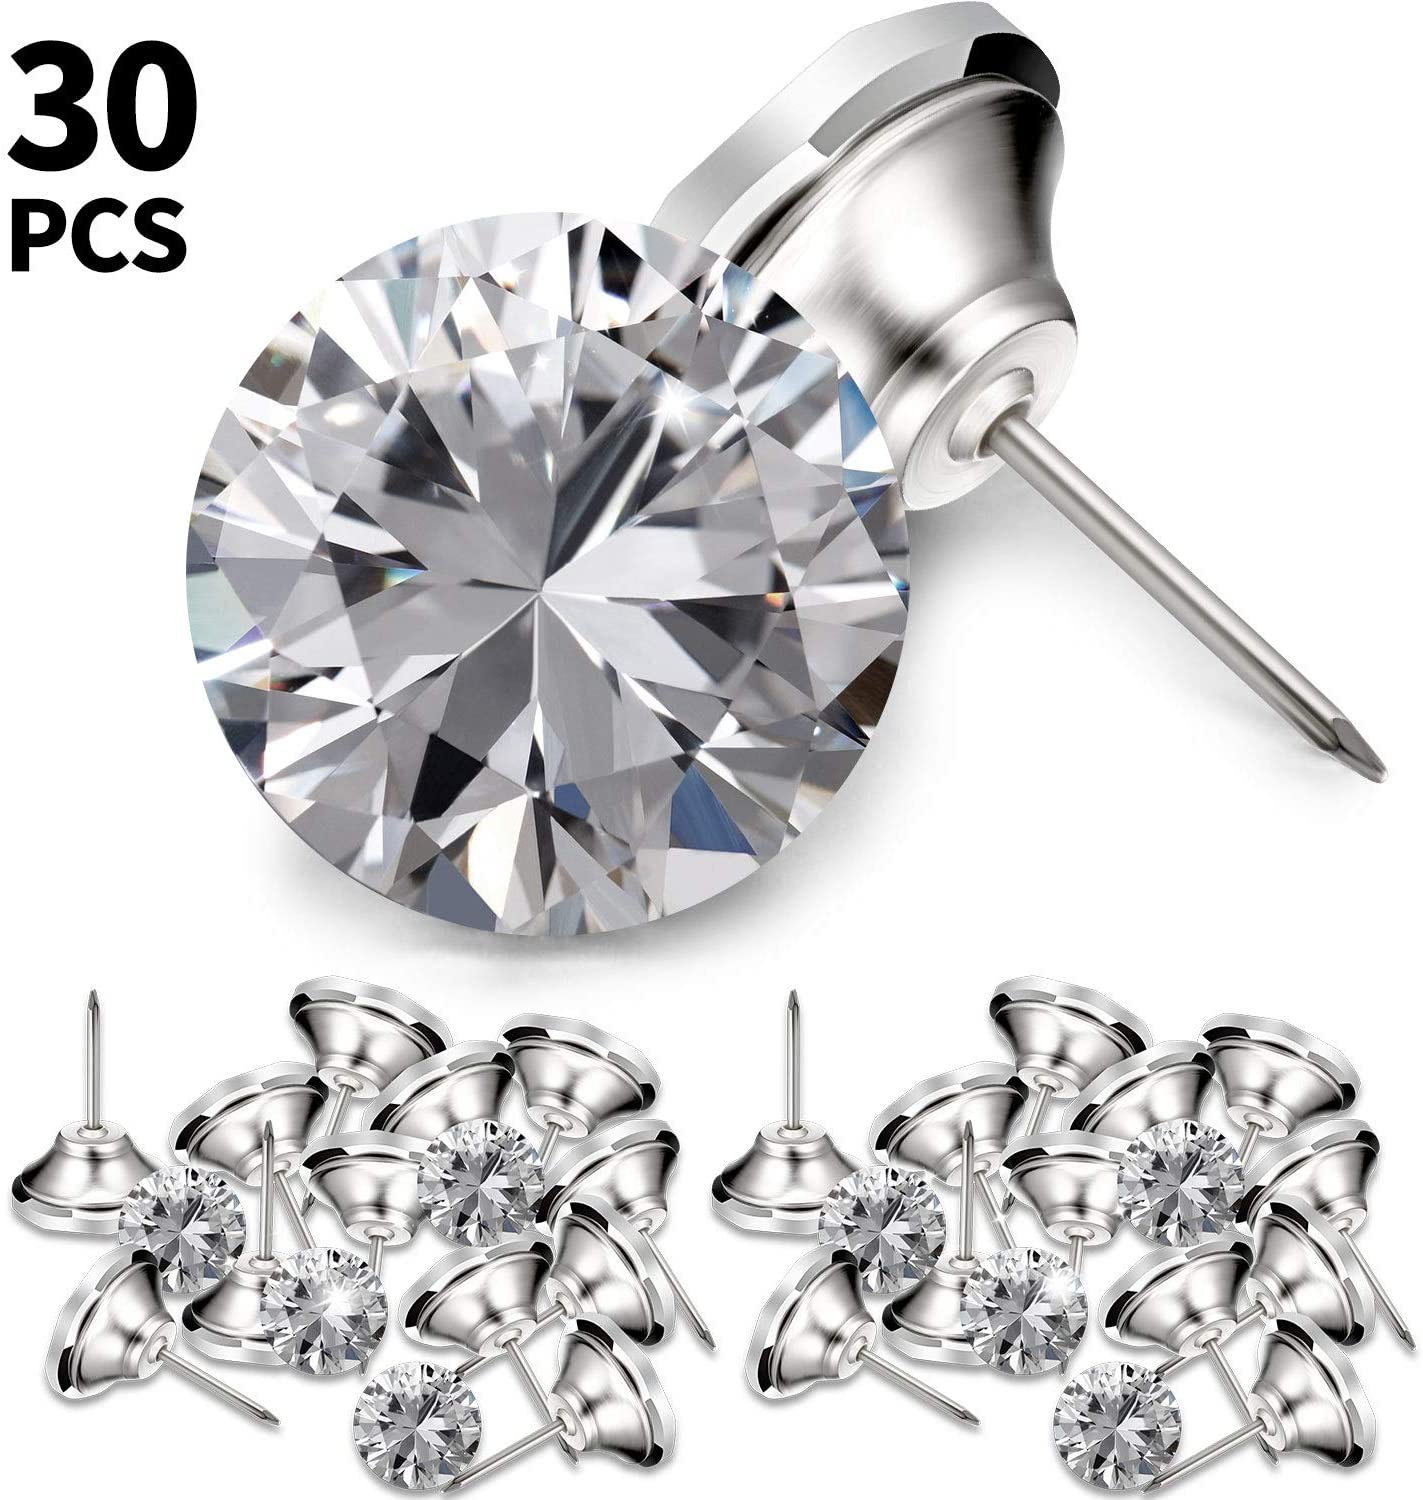 30 Pieces Crystal Upholstery Buttons 25 mm Crystal Upholstery Tacks Clear Crystal Head Upholstery Nails Imitate Diamond Buttons for Sewing DIY Sofa and Wall Decor